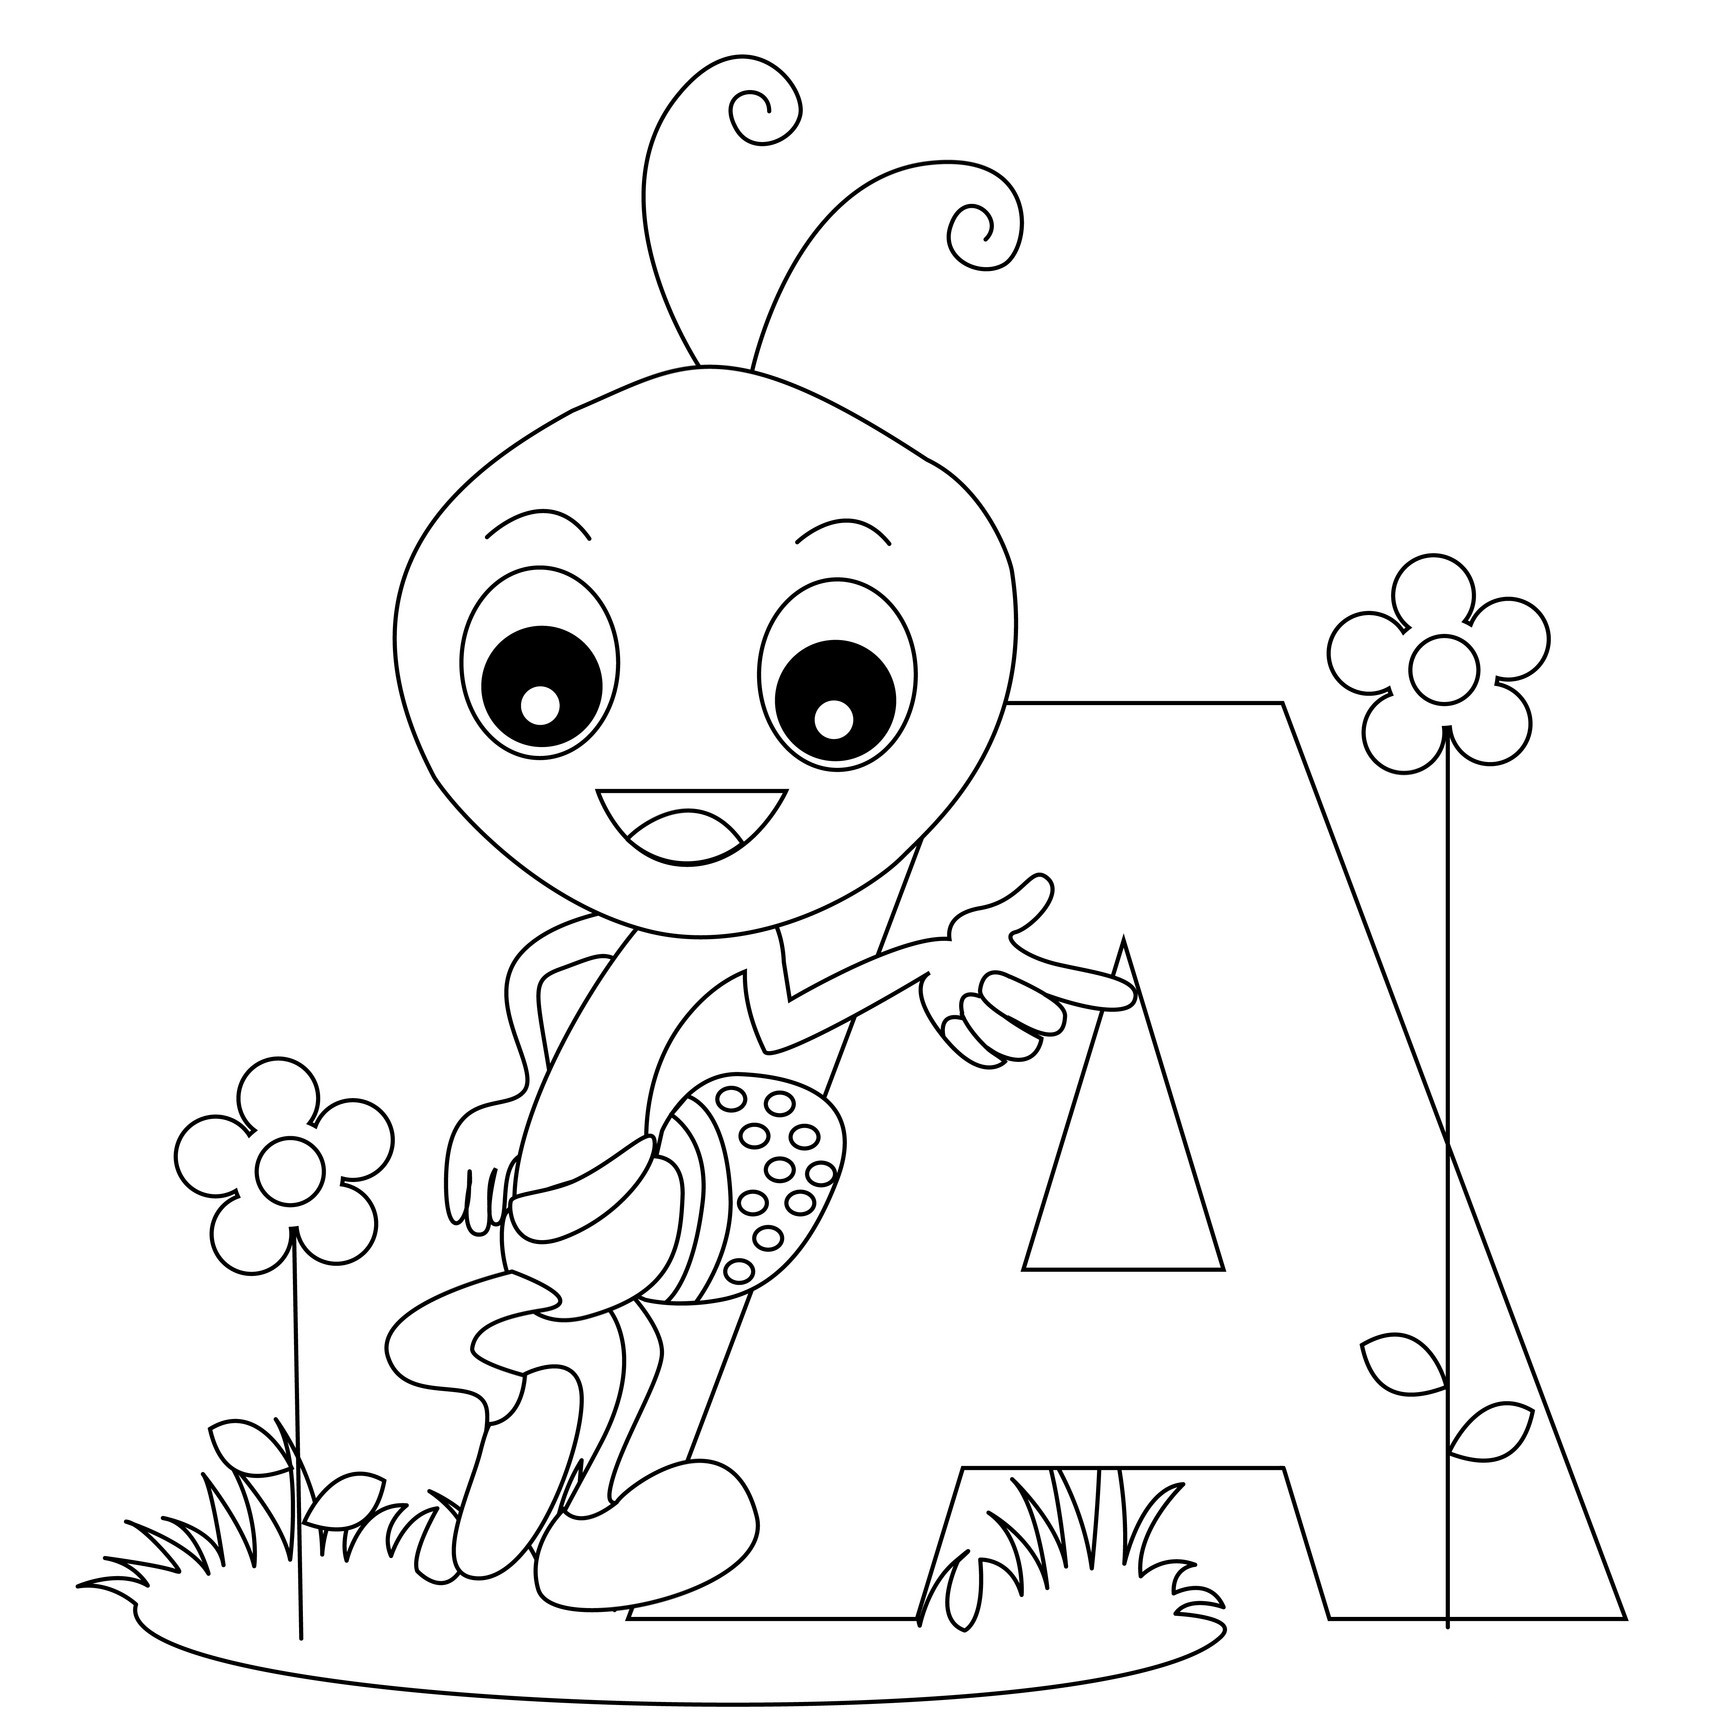 a to z alphabet coloring pages free printable alphabet coloring pages for kids best to a coloring z pages alphabet